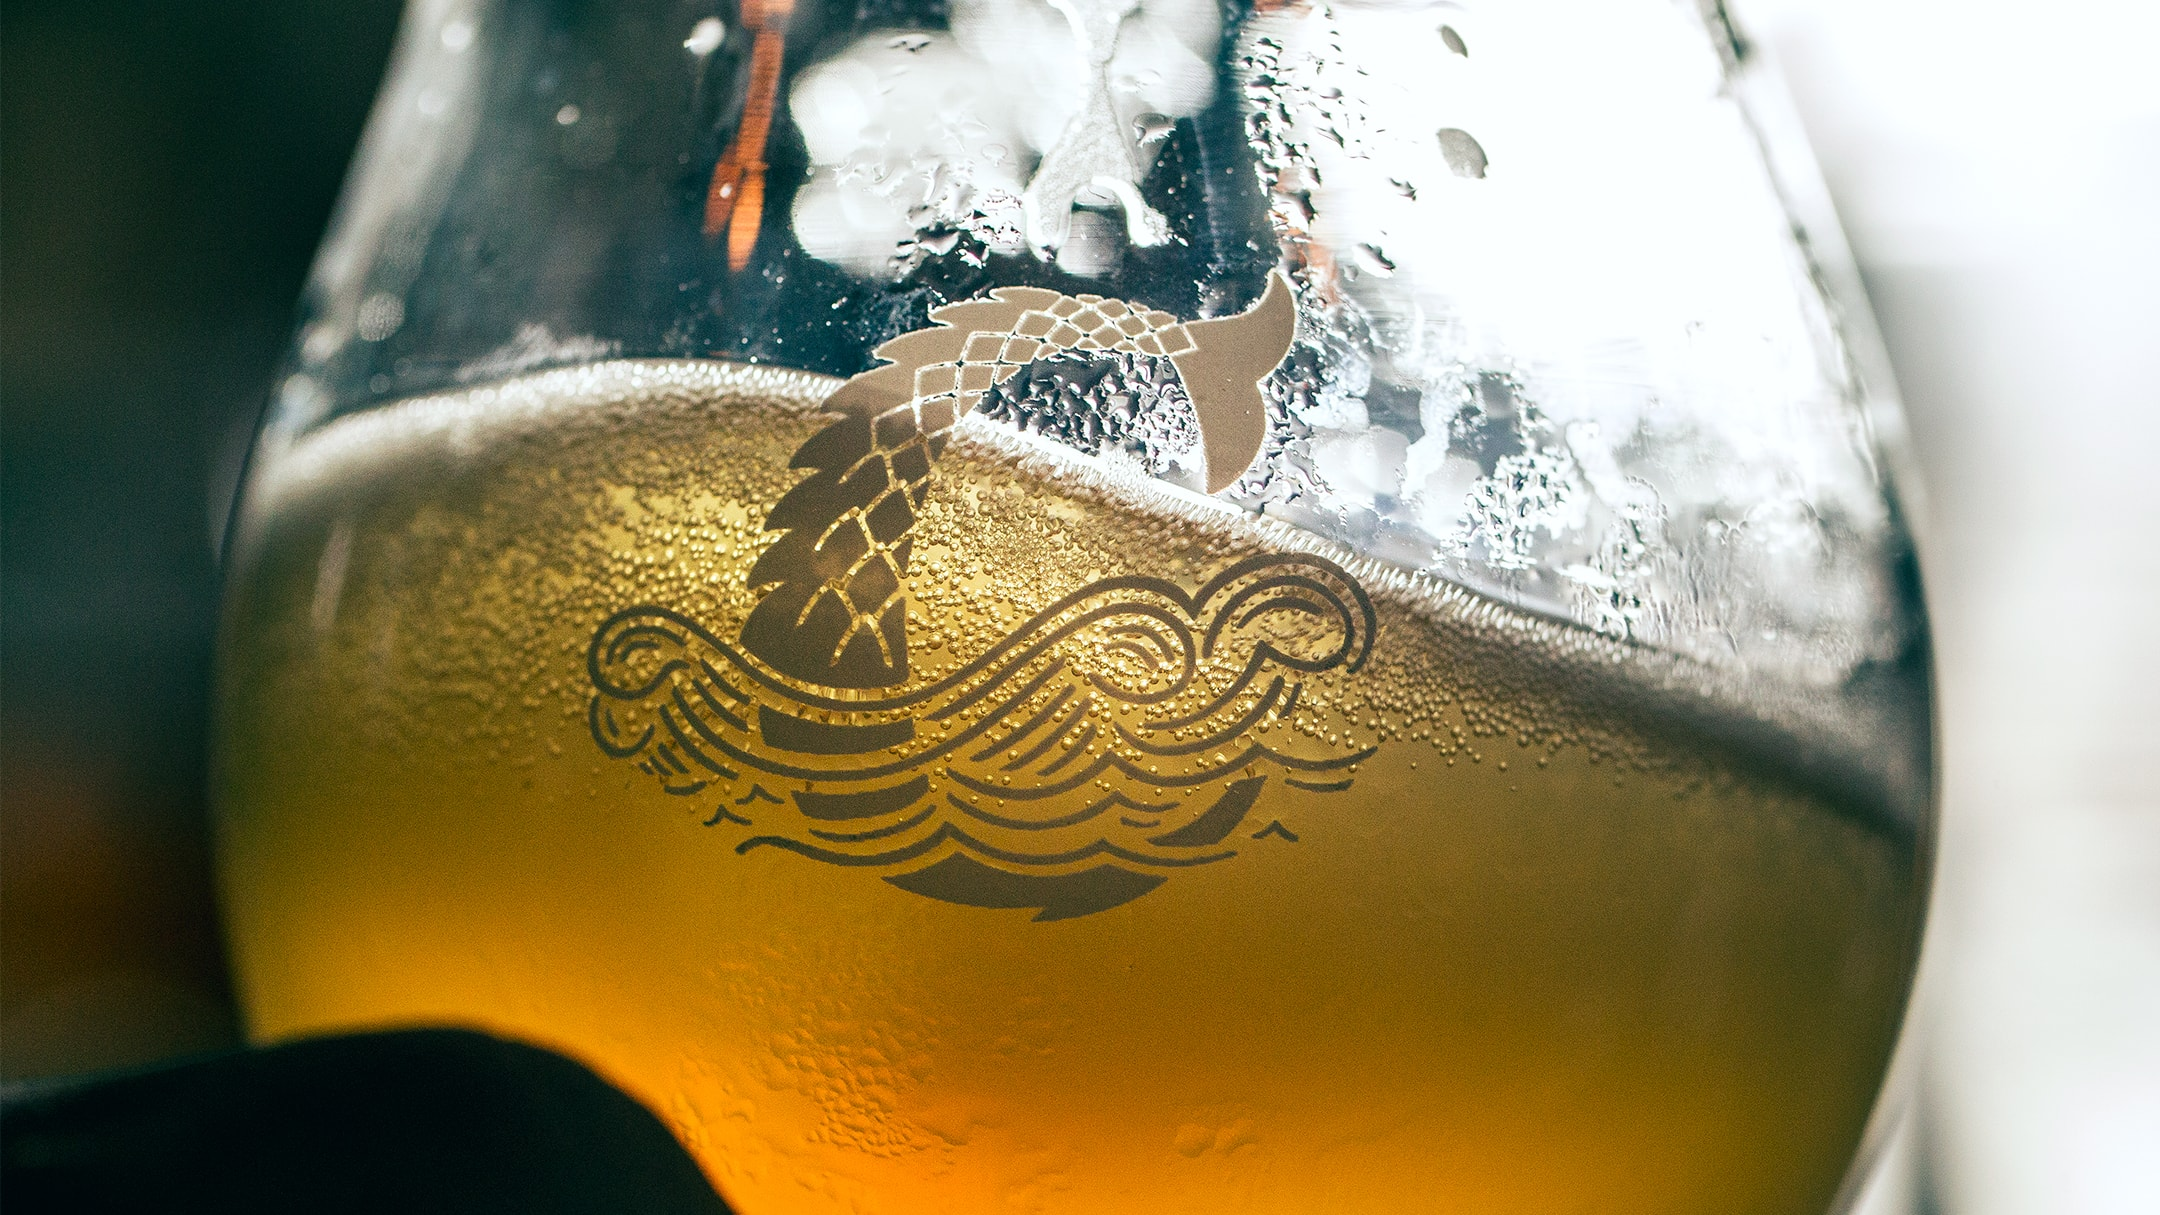 Coppertail logo on glass with beer